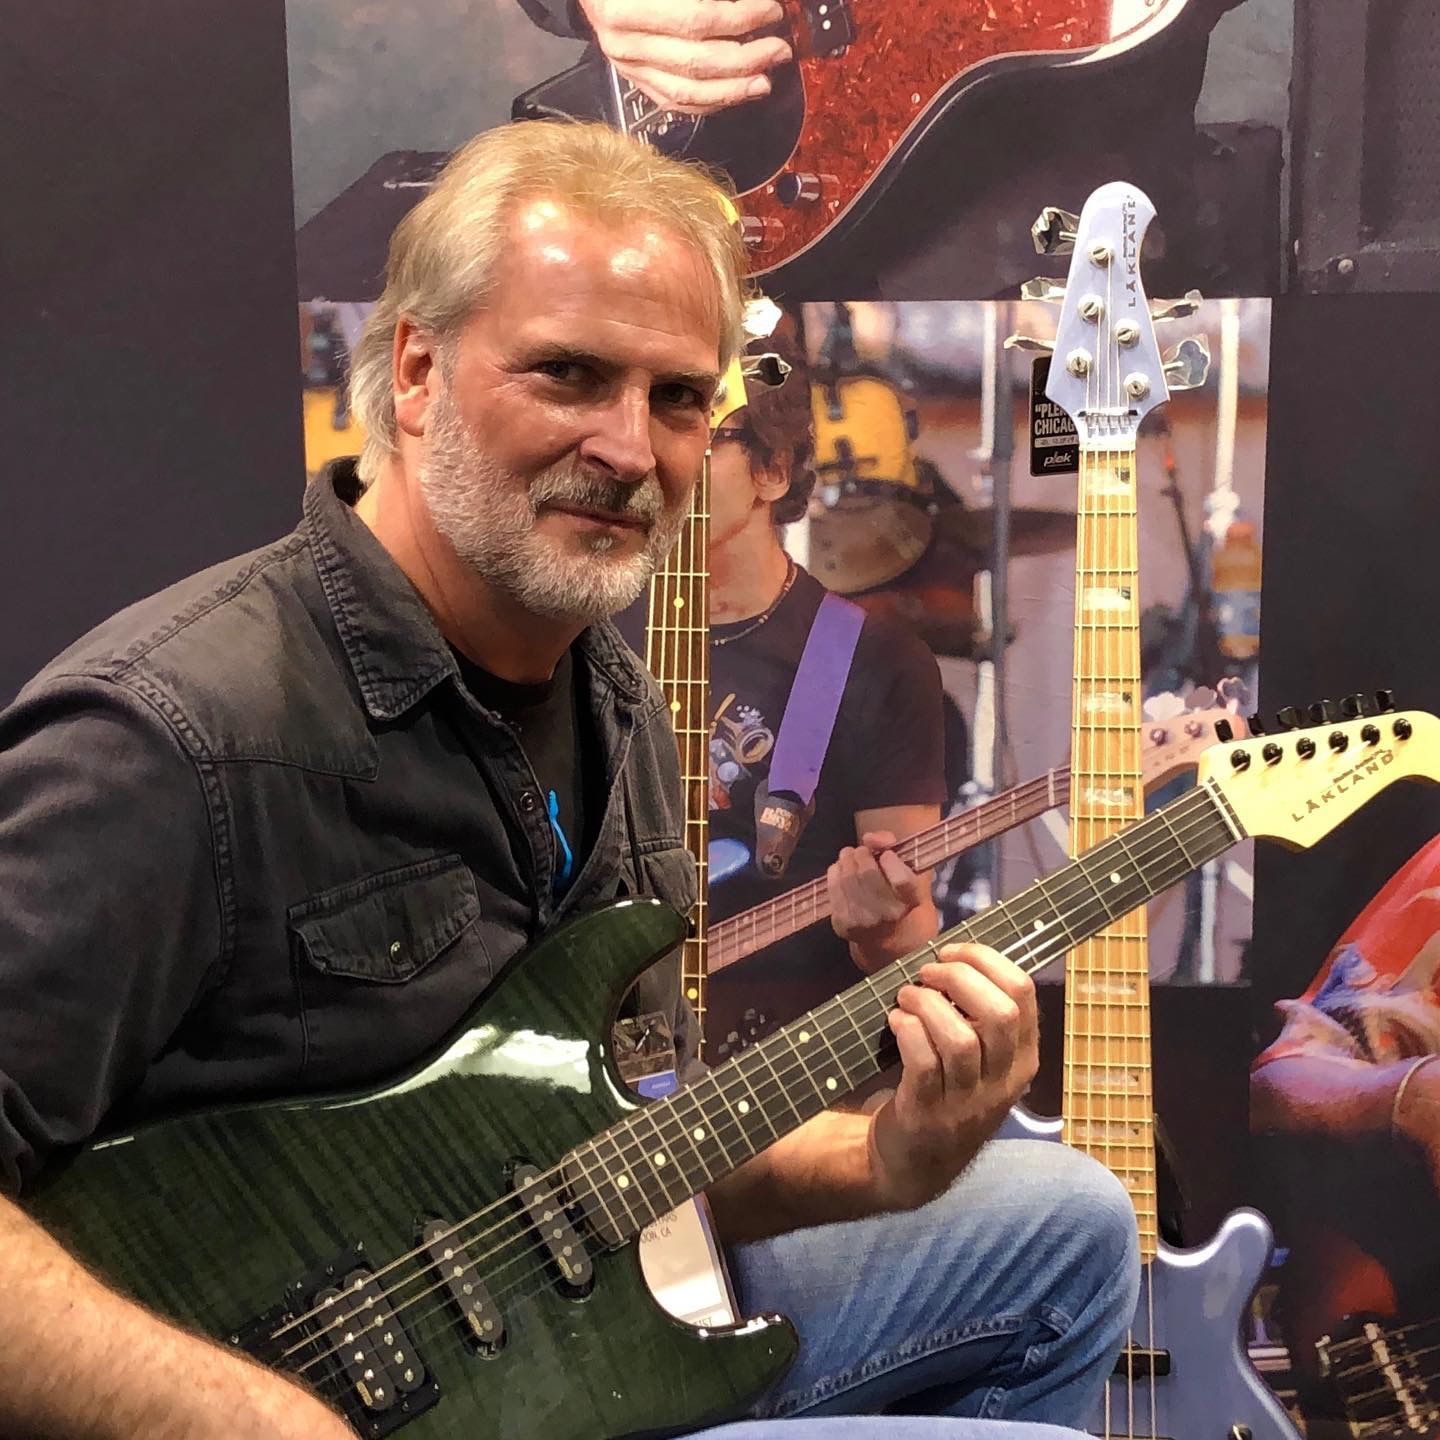 Andy Childs Plays A Lakland Bass